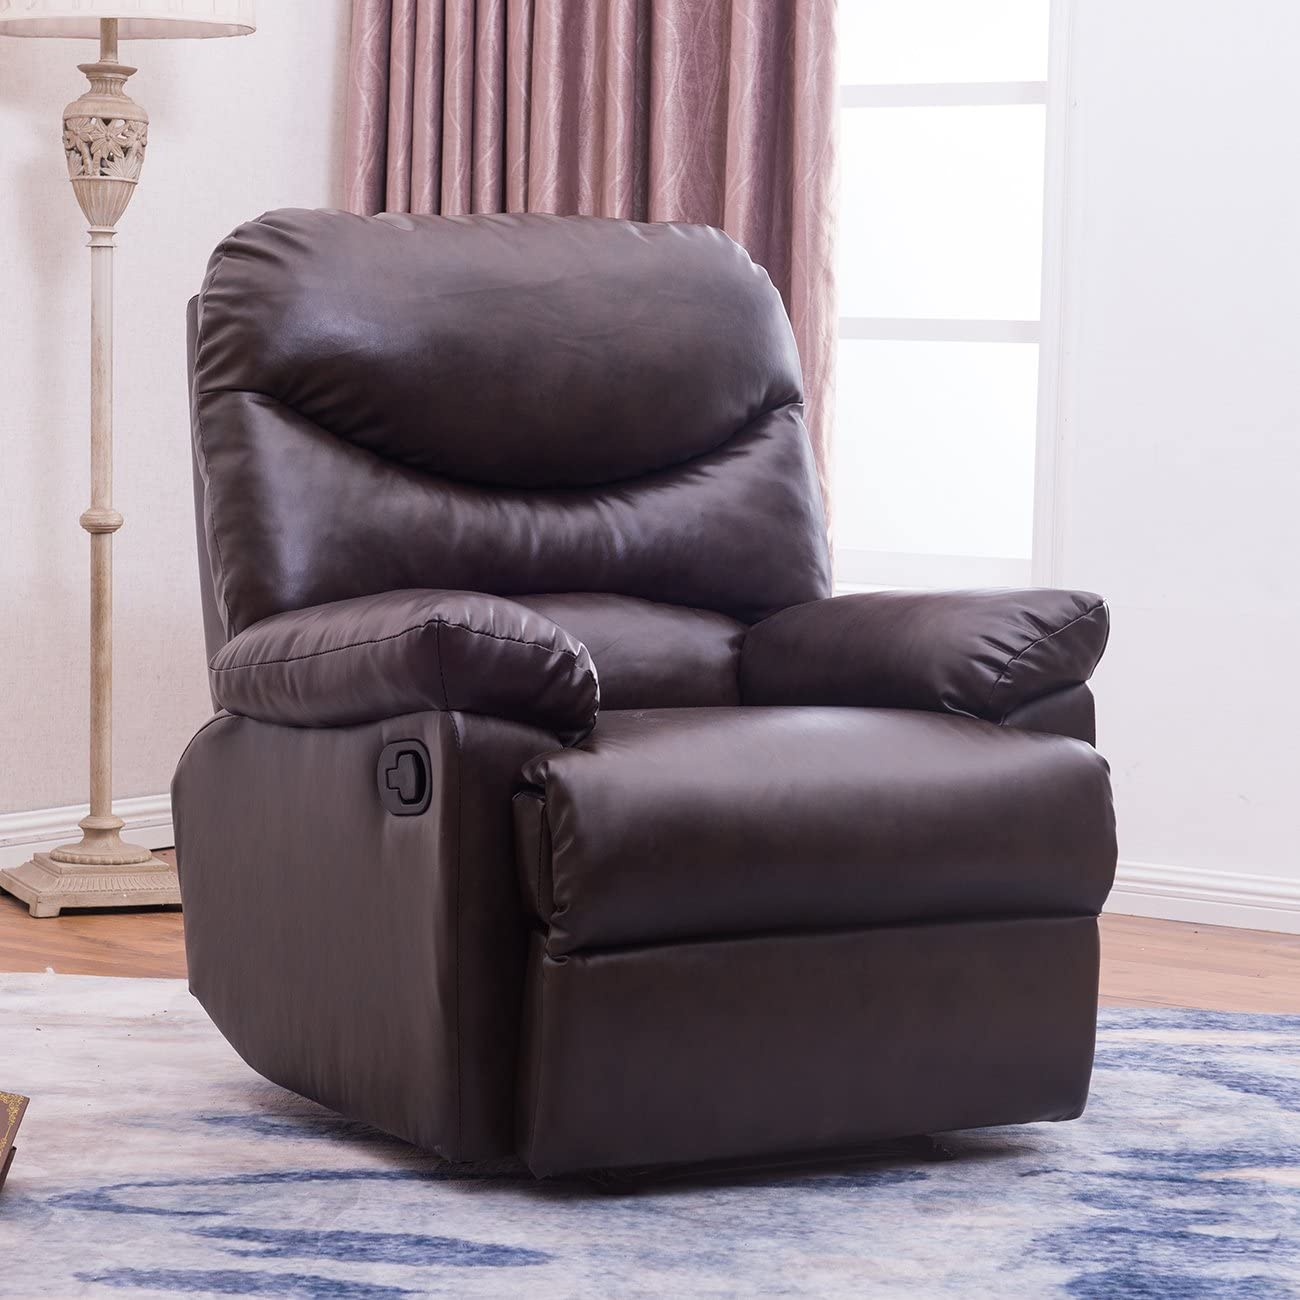 BELLEZE Recliner Living Room Chair Faux Leather Lounge Padded Armrest (Brown)